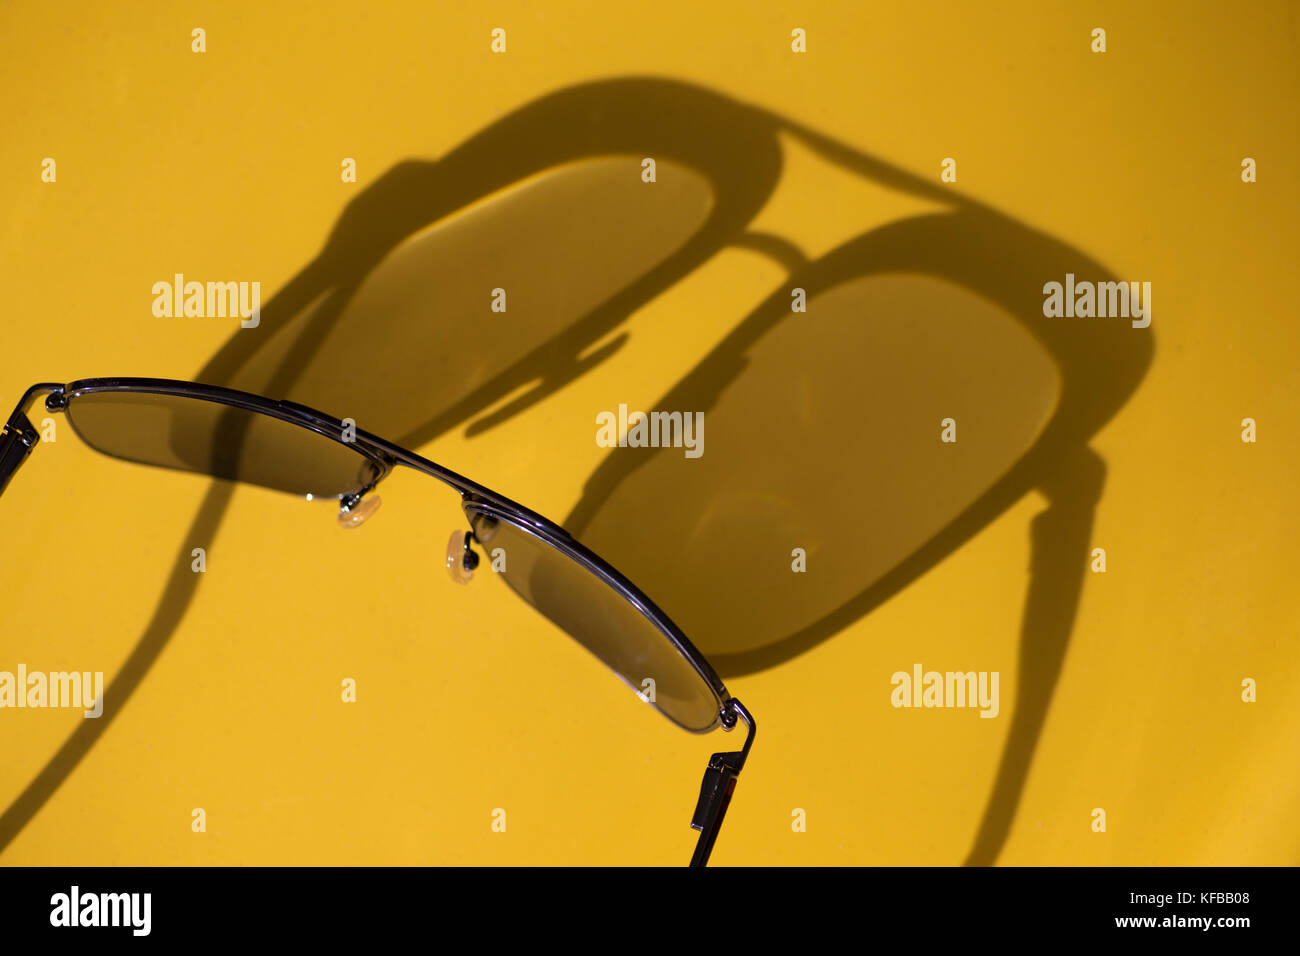 Abstract view of shadows cast by sunlight on a yellow background of a pair of eyeglasses - Stock Image